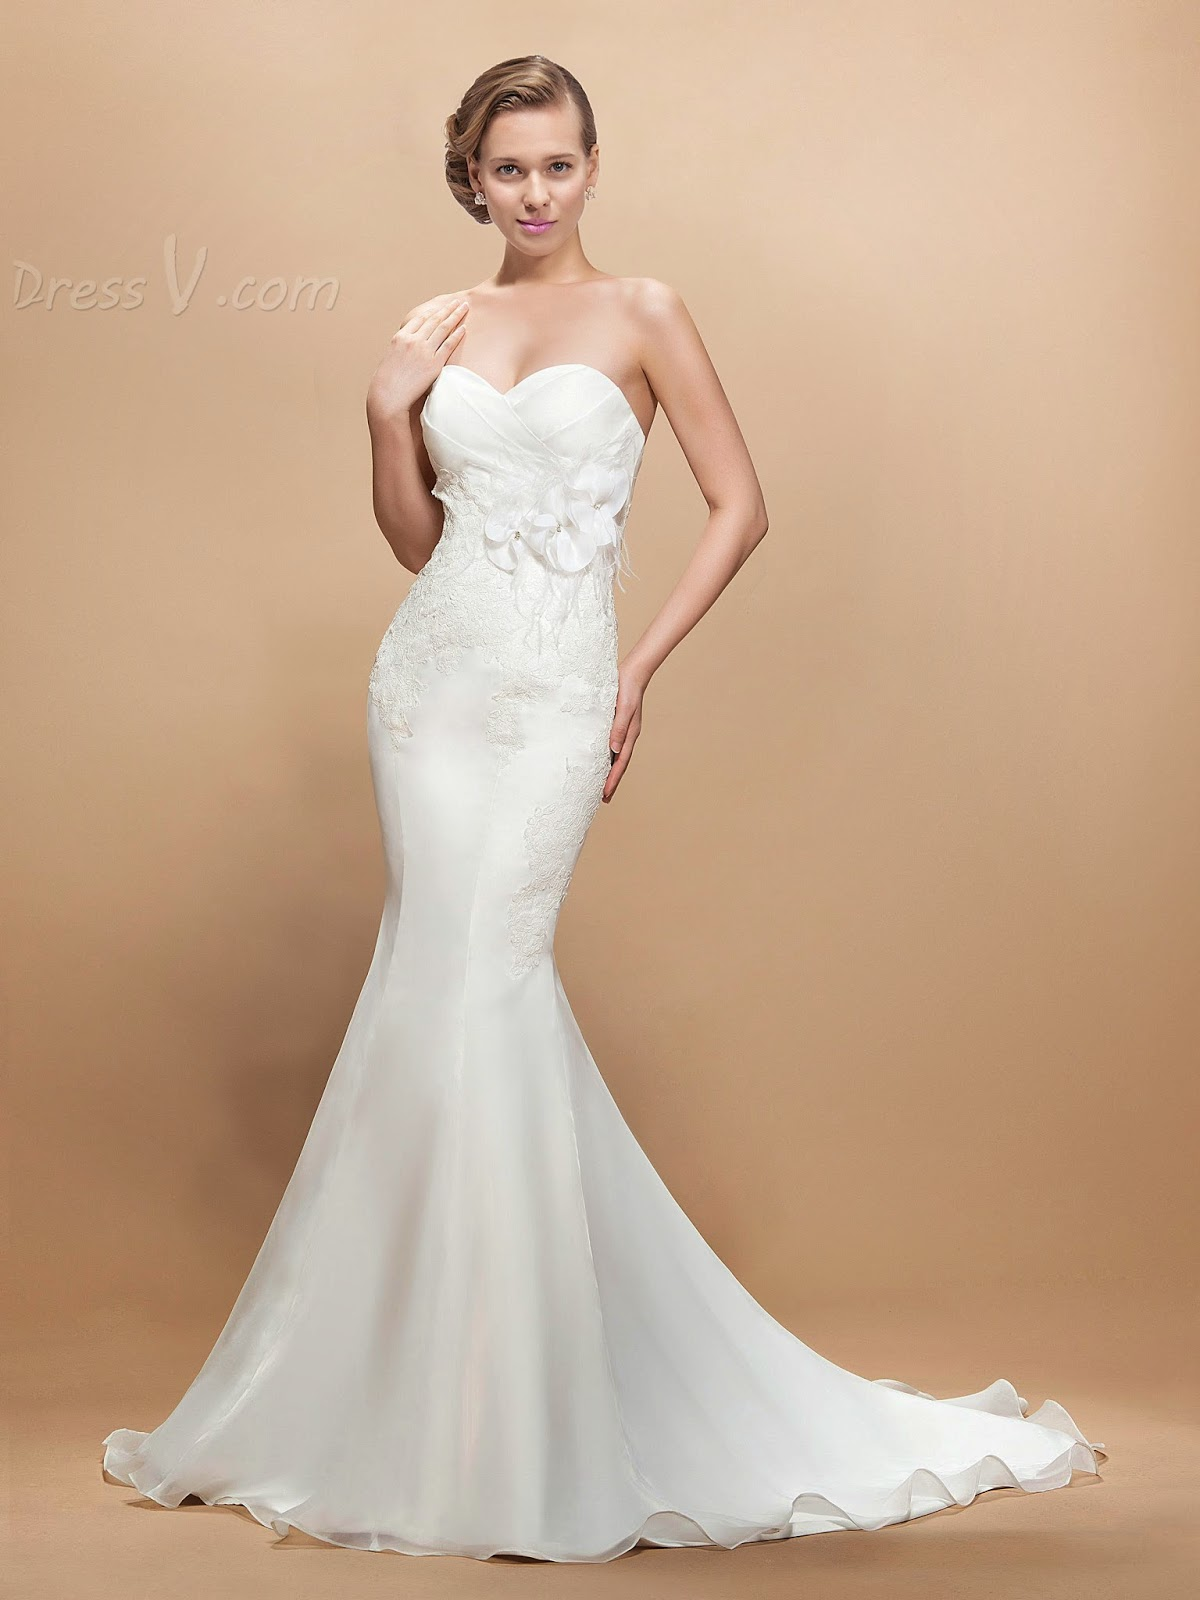 Mermaid Wedding Dresses with a Twist at DressV